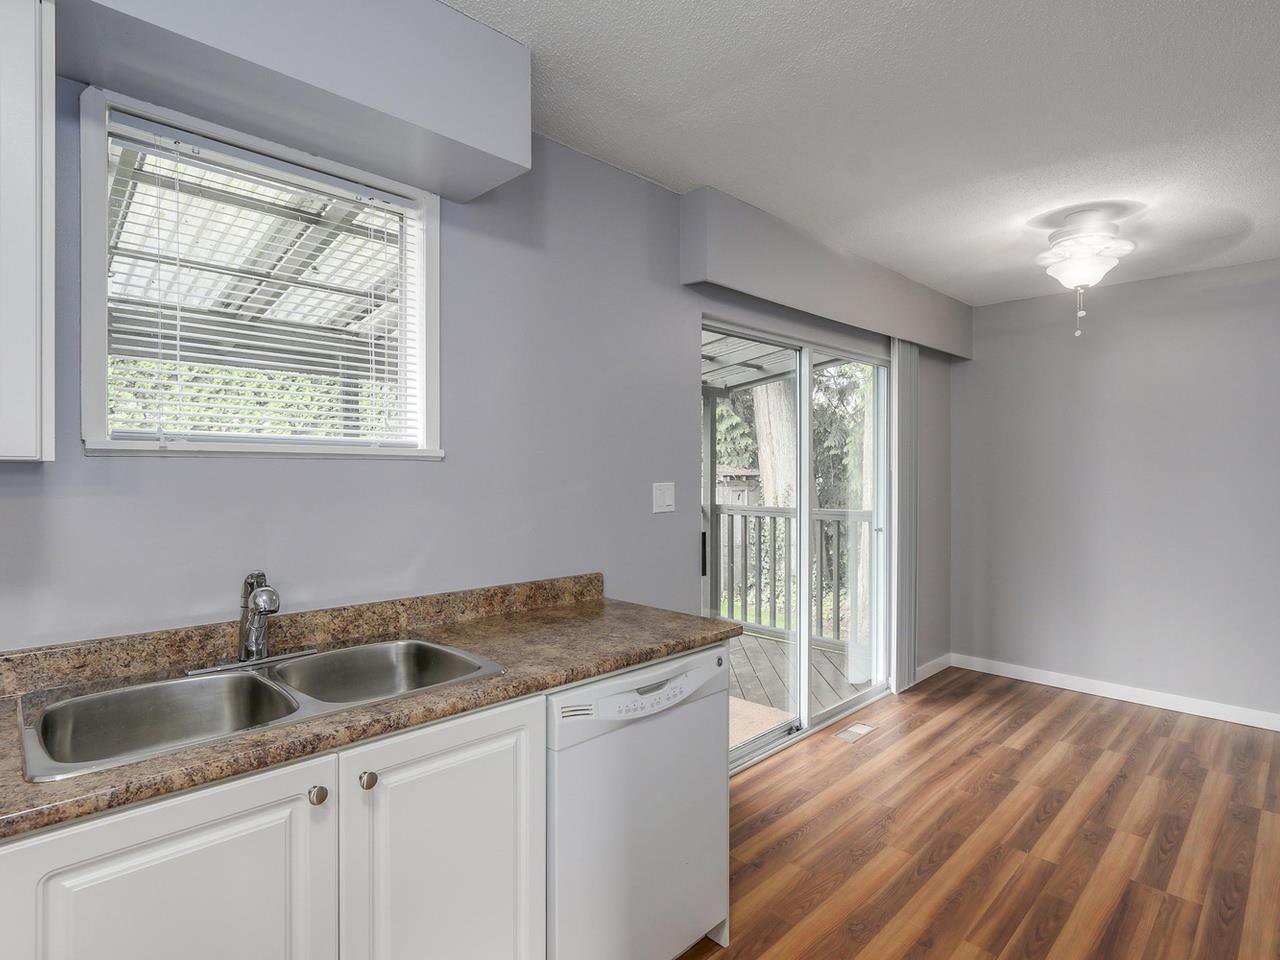 """Photo 7: Photos: 1673 GREENMOUNT Avenue in Port Coquitlam: Oxford Heights 1/2 Duplex for sale in """"OXFORD HEIGHTS"""" : MLS®# R2221936"""